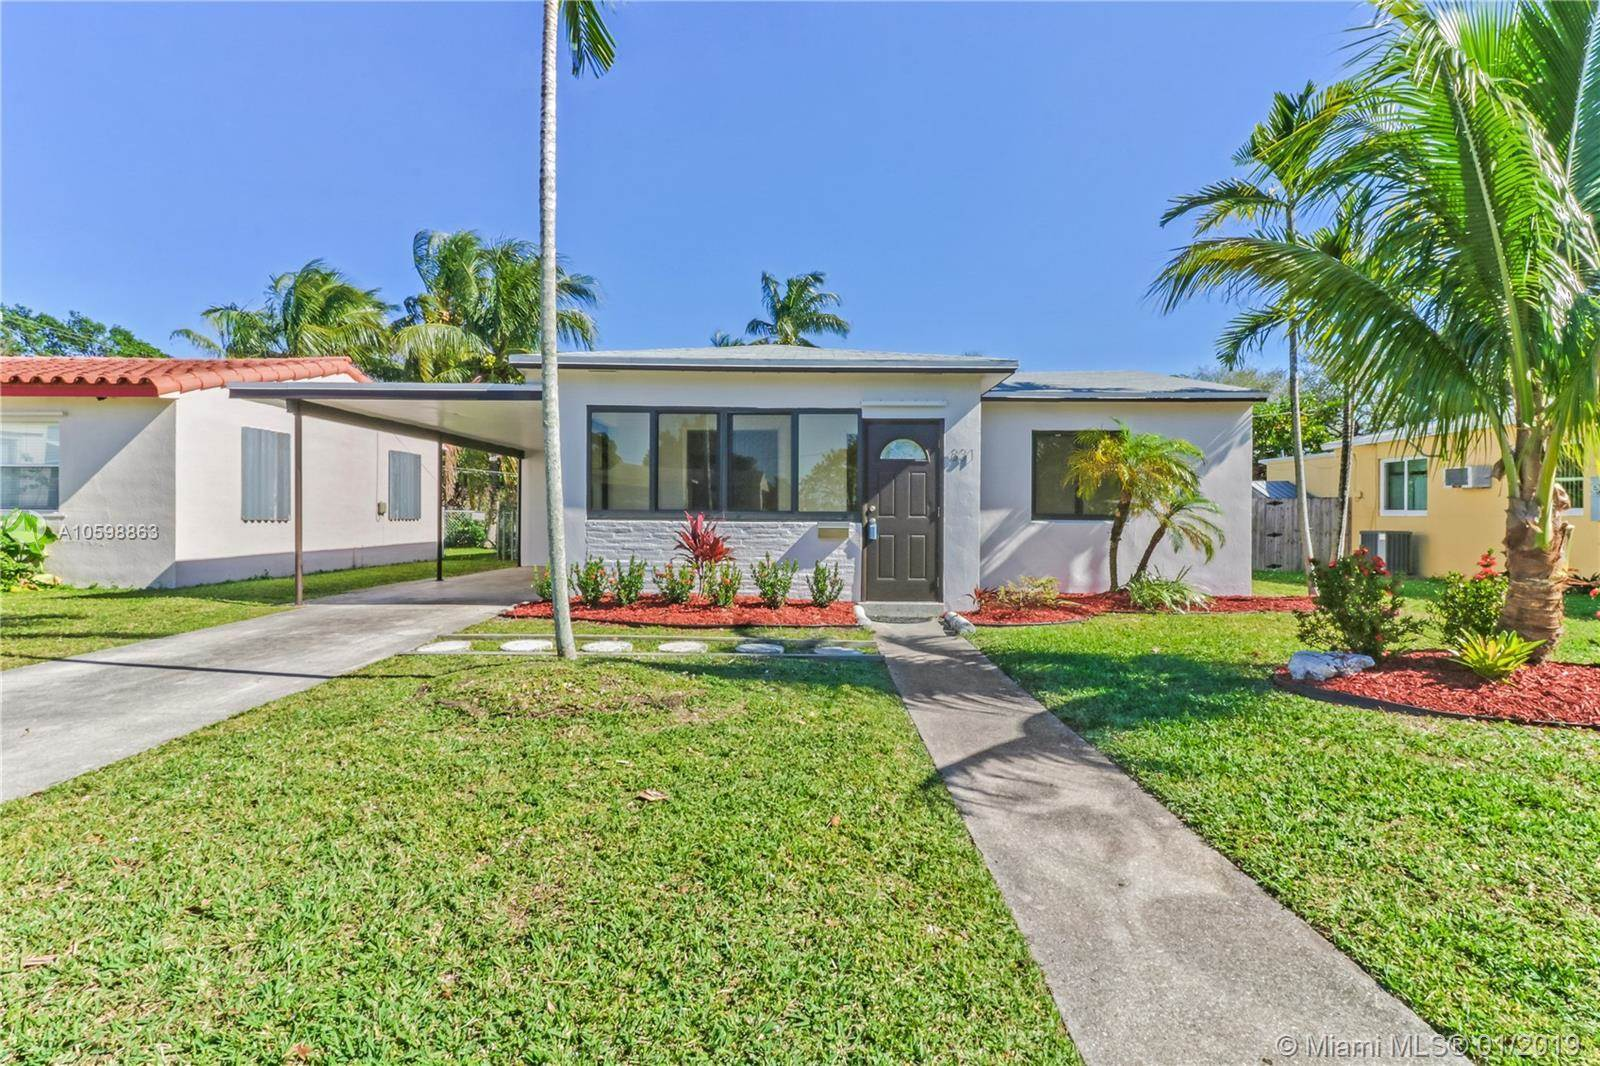 831 South 28th Ave, Hollywood, FL 33020